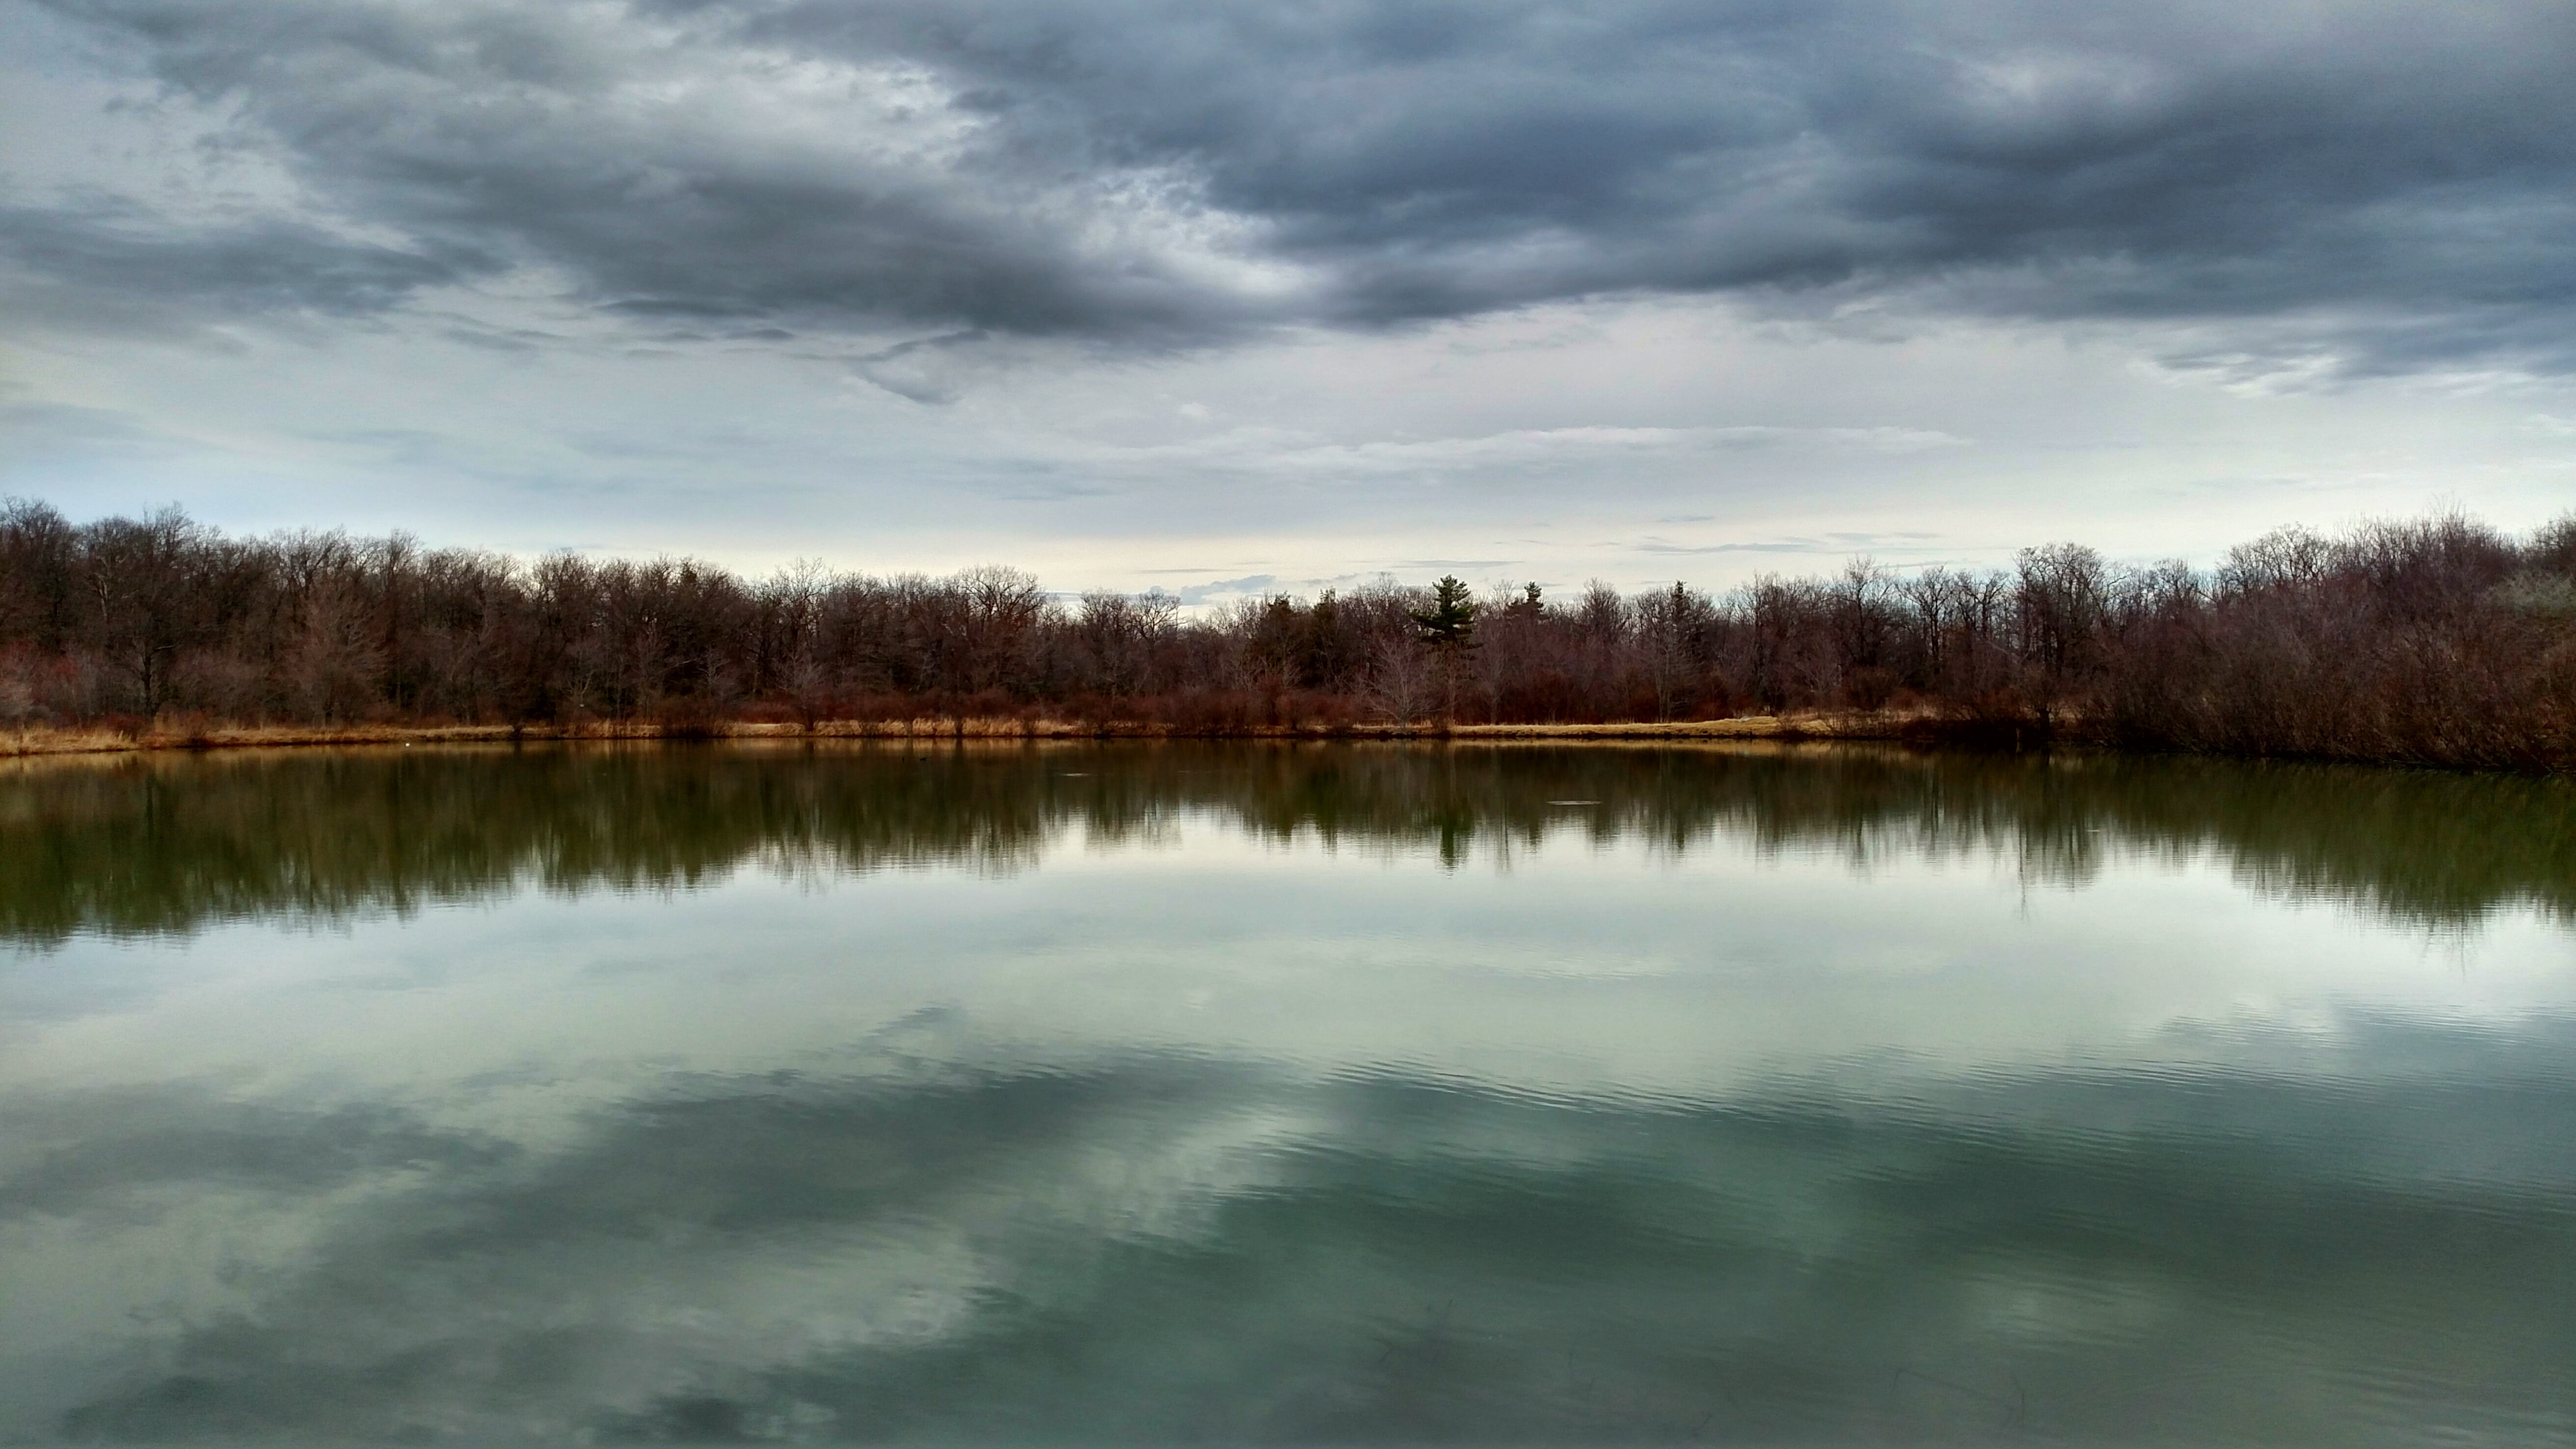 A smooth lake under heavy gray clouds in the autumn